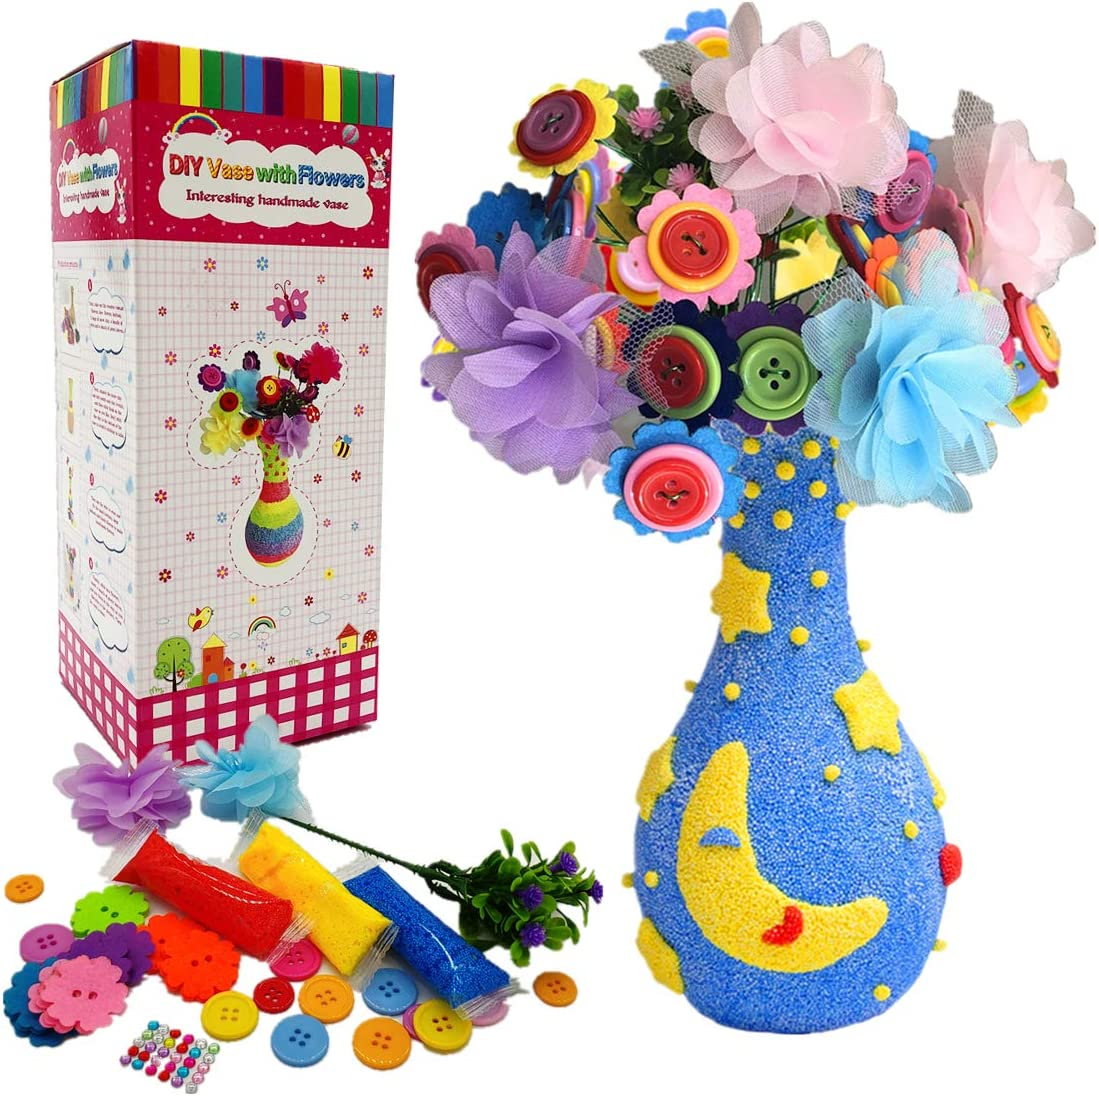 Fun Activity for Boys /& Girls Age 4 5 6 7 8 9 10 11 12 Years Old M-Aimee 2 Packs Flower Craft Kit for Kids,Colorful Flower /& Vase Art Kits DIY Your Own Flower with Button and Lace Flowers Crafts